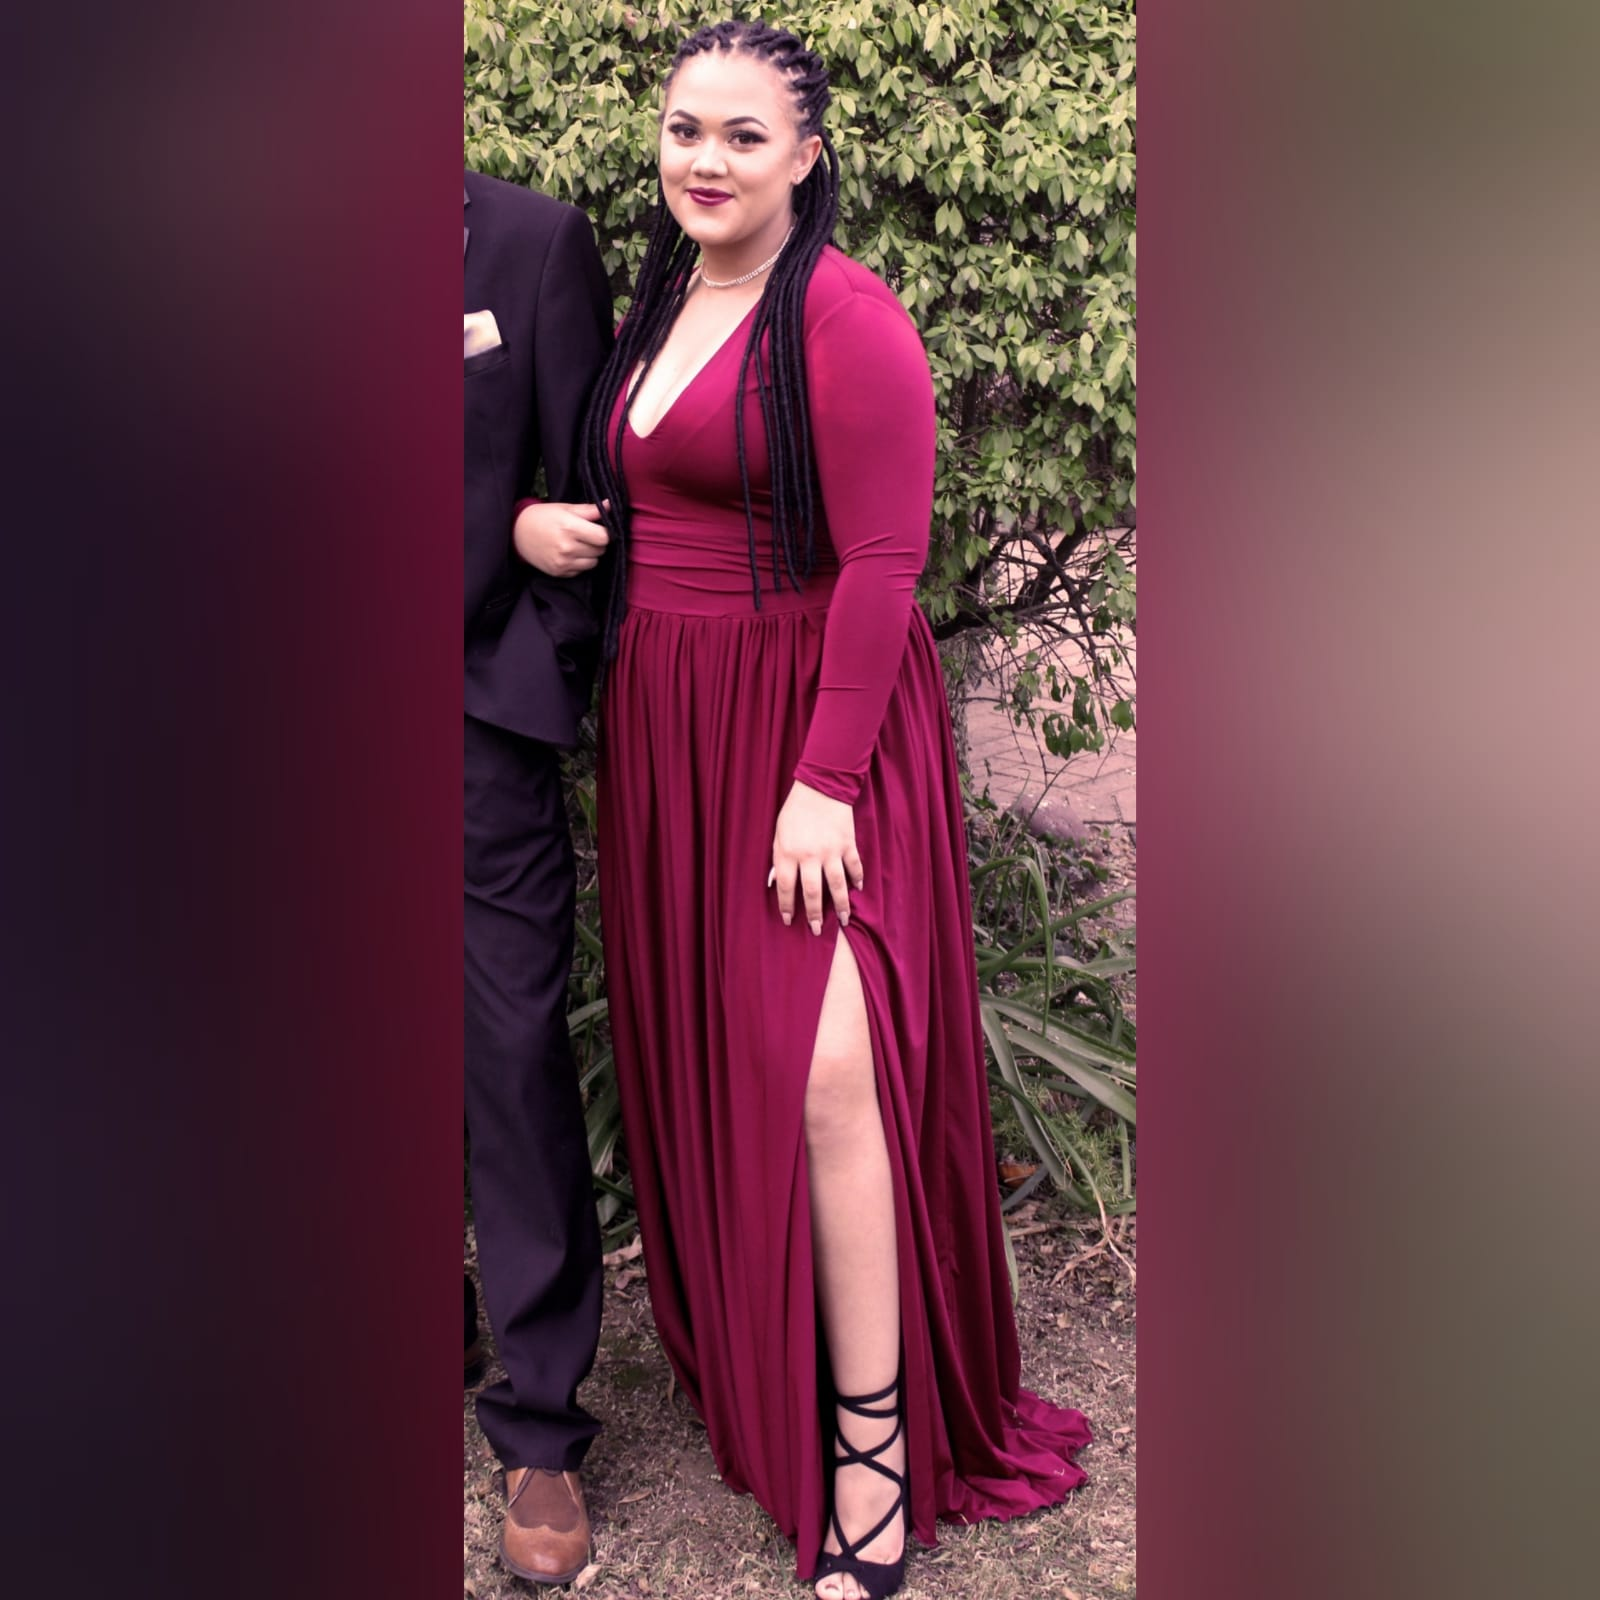 Burgundy simple long prom dress 1 burgundy simple long prom dress with a v neckline, long fitted sleeves, flowy gathered bottom with a slit and a little train.